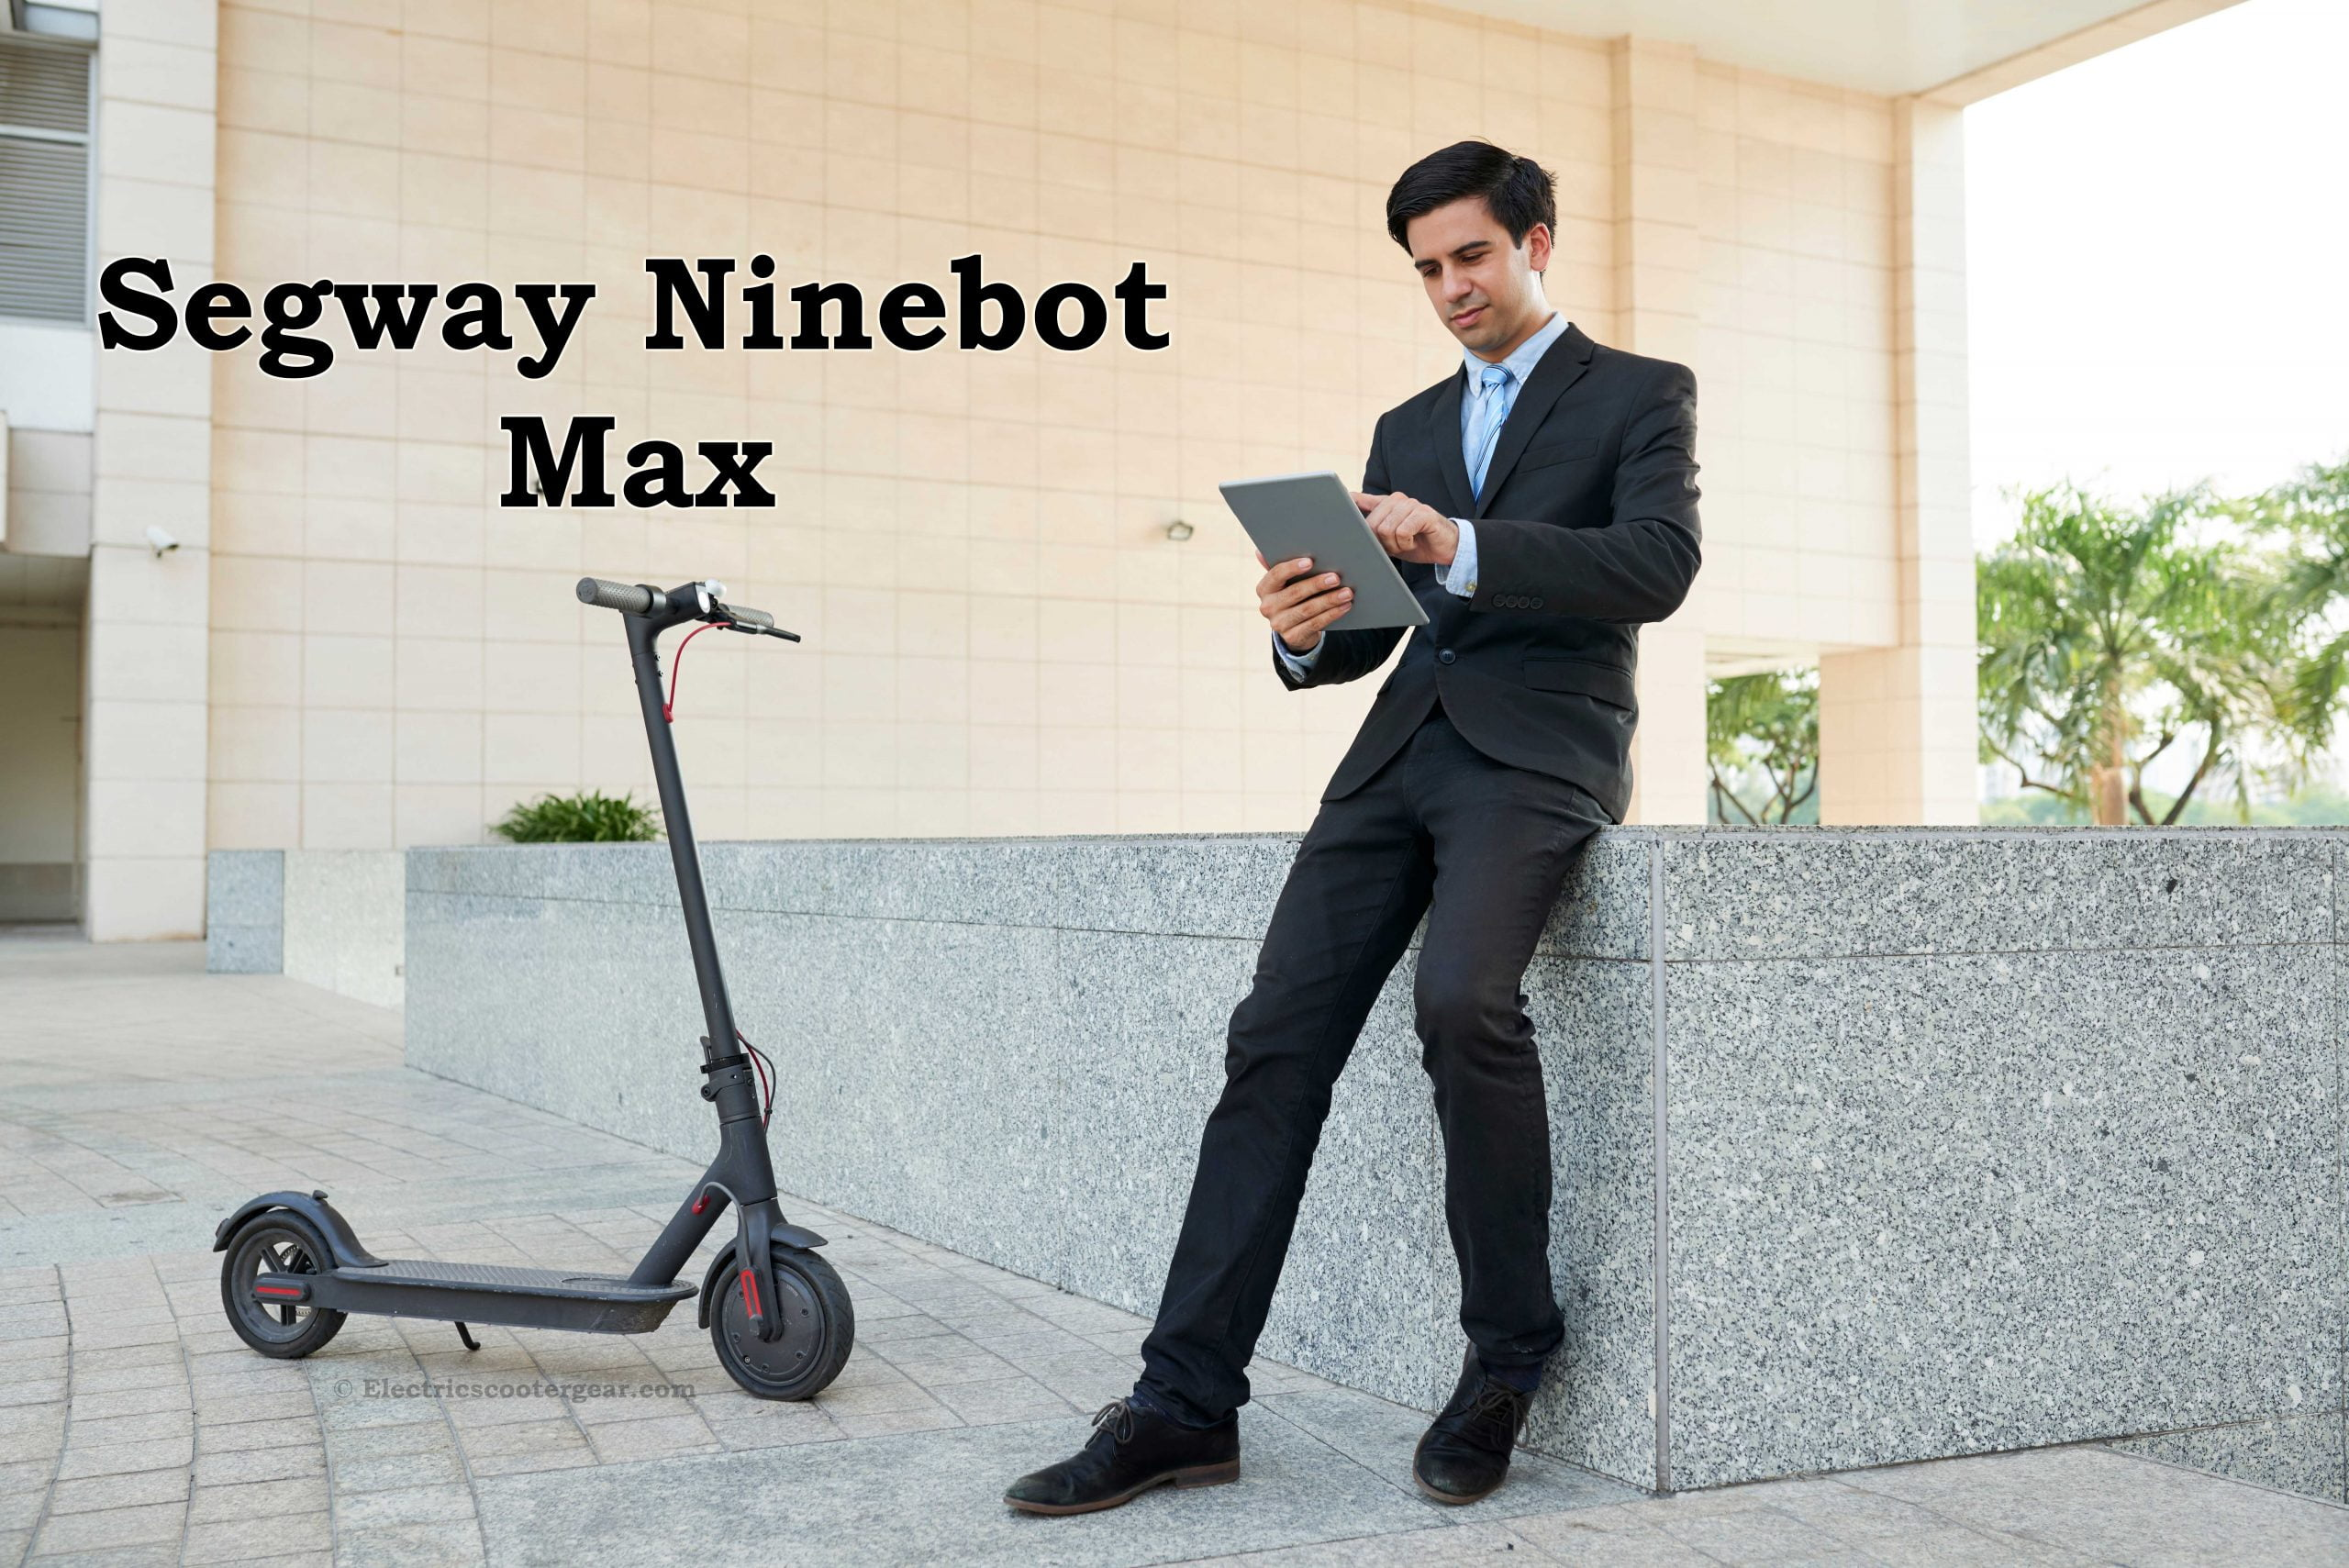 Segway Ninebot Max Review